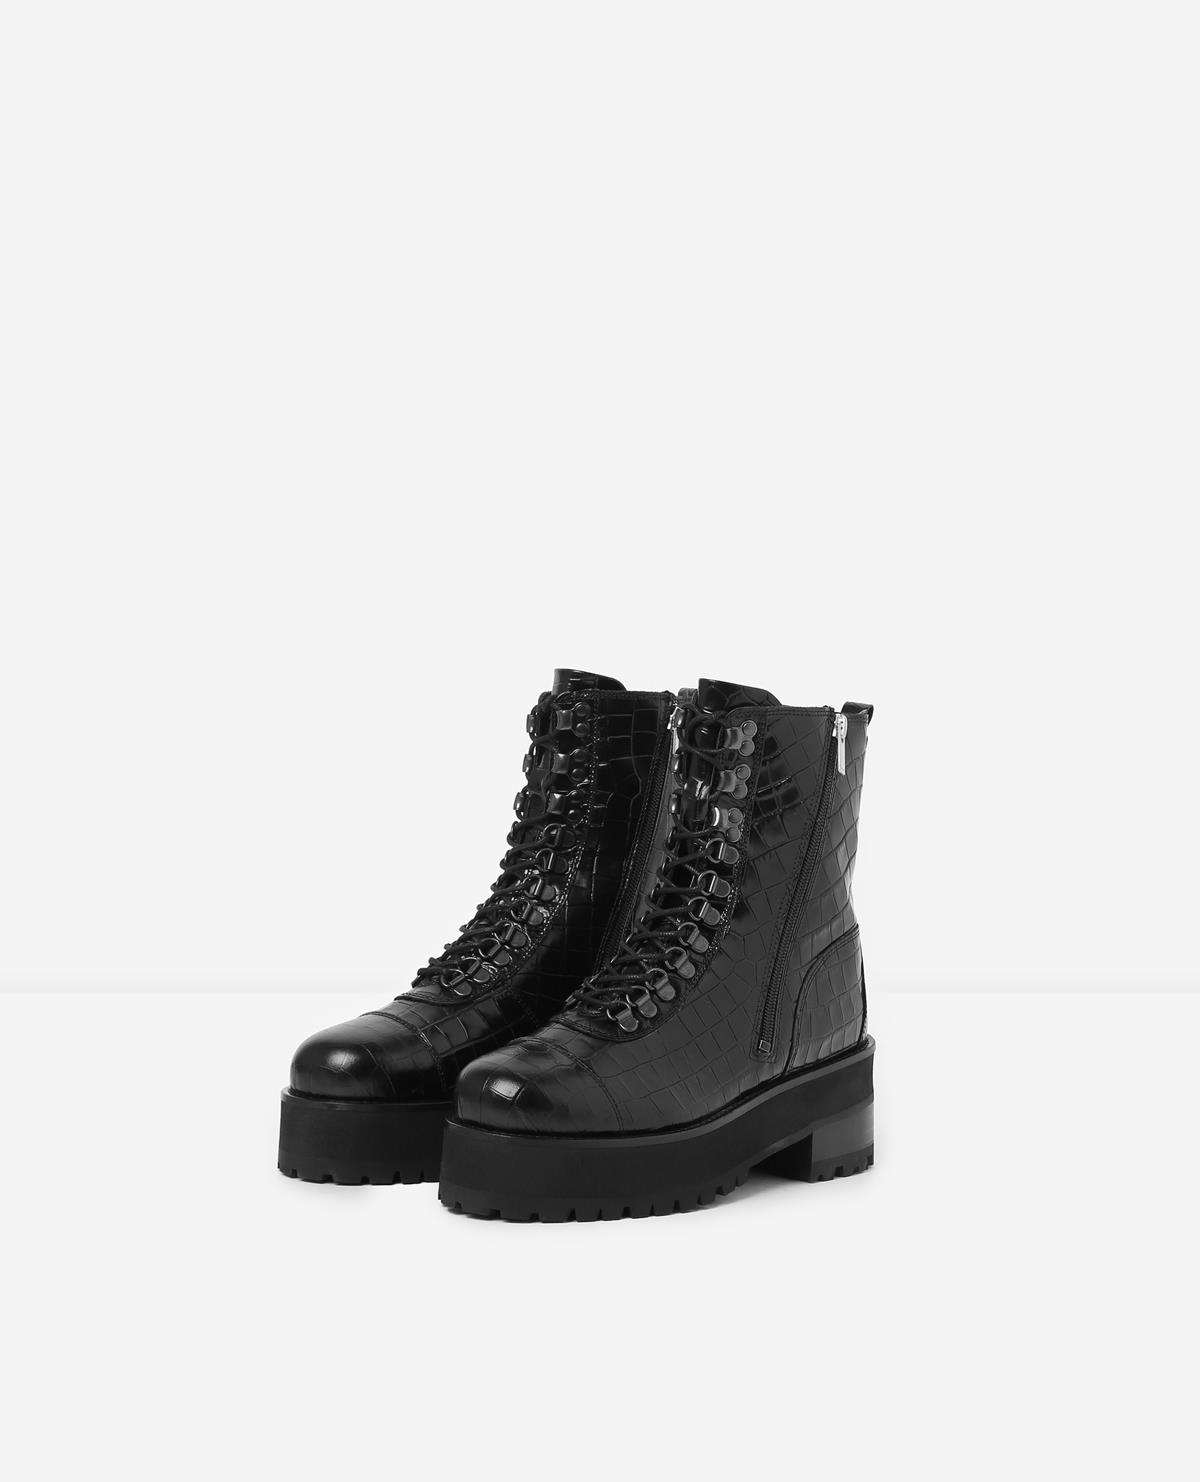 Black leather lace-up boots w/ notched soles